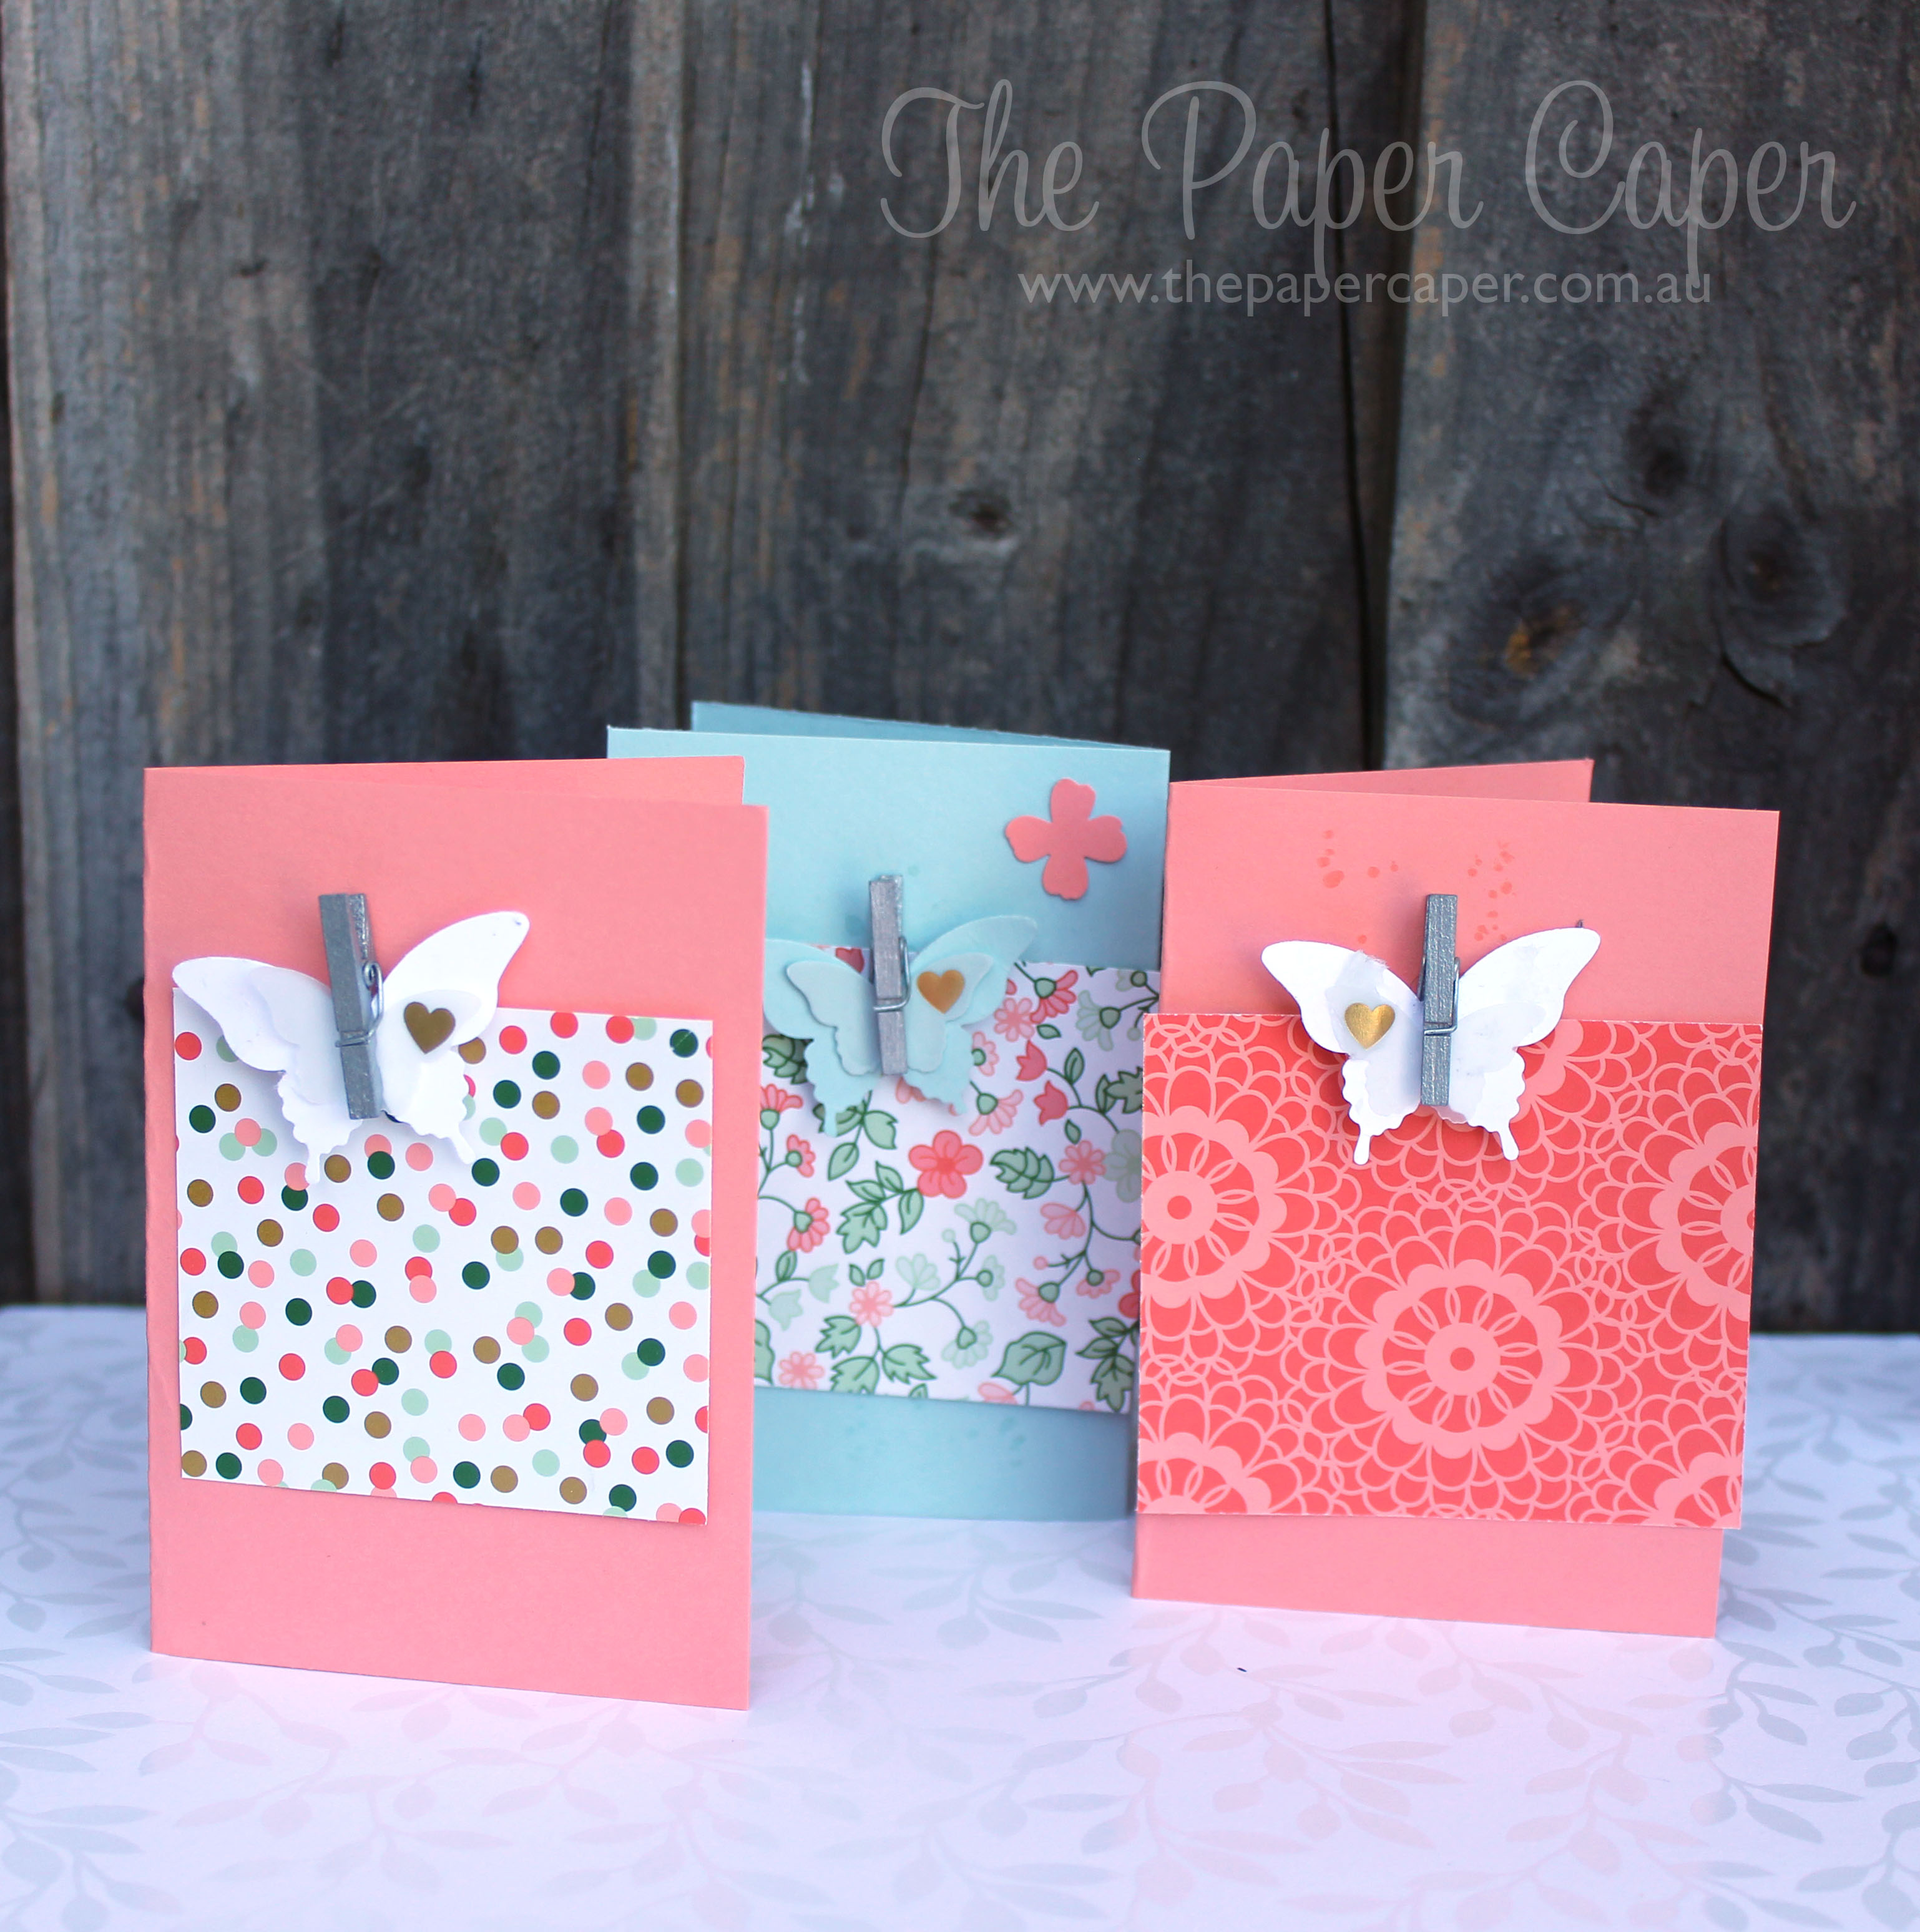 Butterfly notecards for CASEing the Catty Challenges. Details @ www.thepapercaper.com.au. Stampin' Up! Supplies: Crisp Cantaloupe, Pistachio Pudding, Elegant Butterfly punch, Small Butterfly punch, Metallic mini clothespeg, Gold Soiree DSP, Sweet Sadie washi.